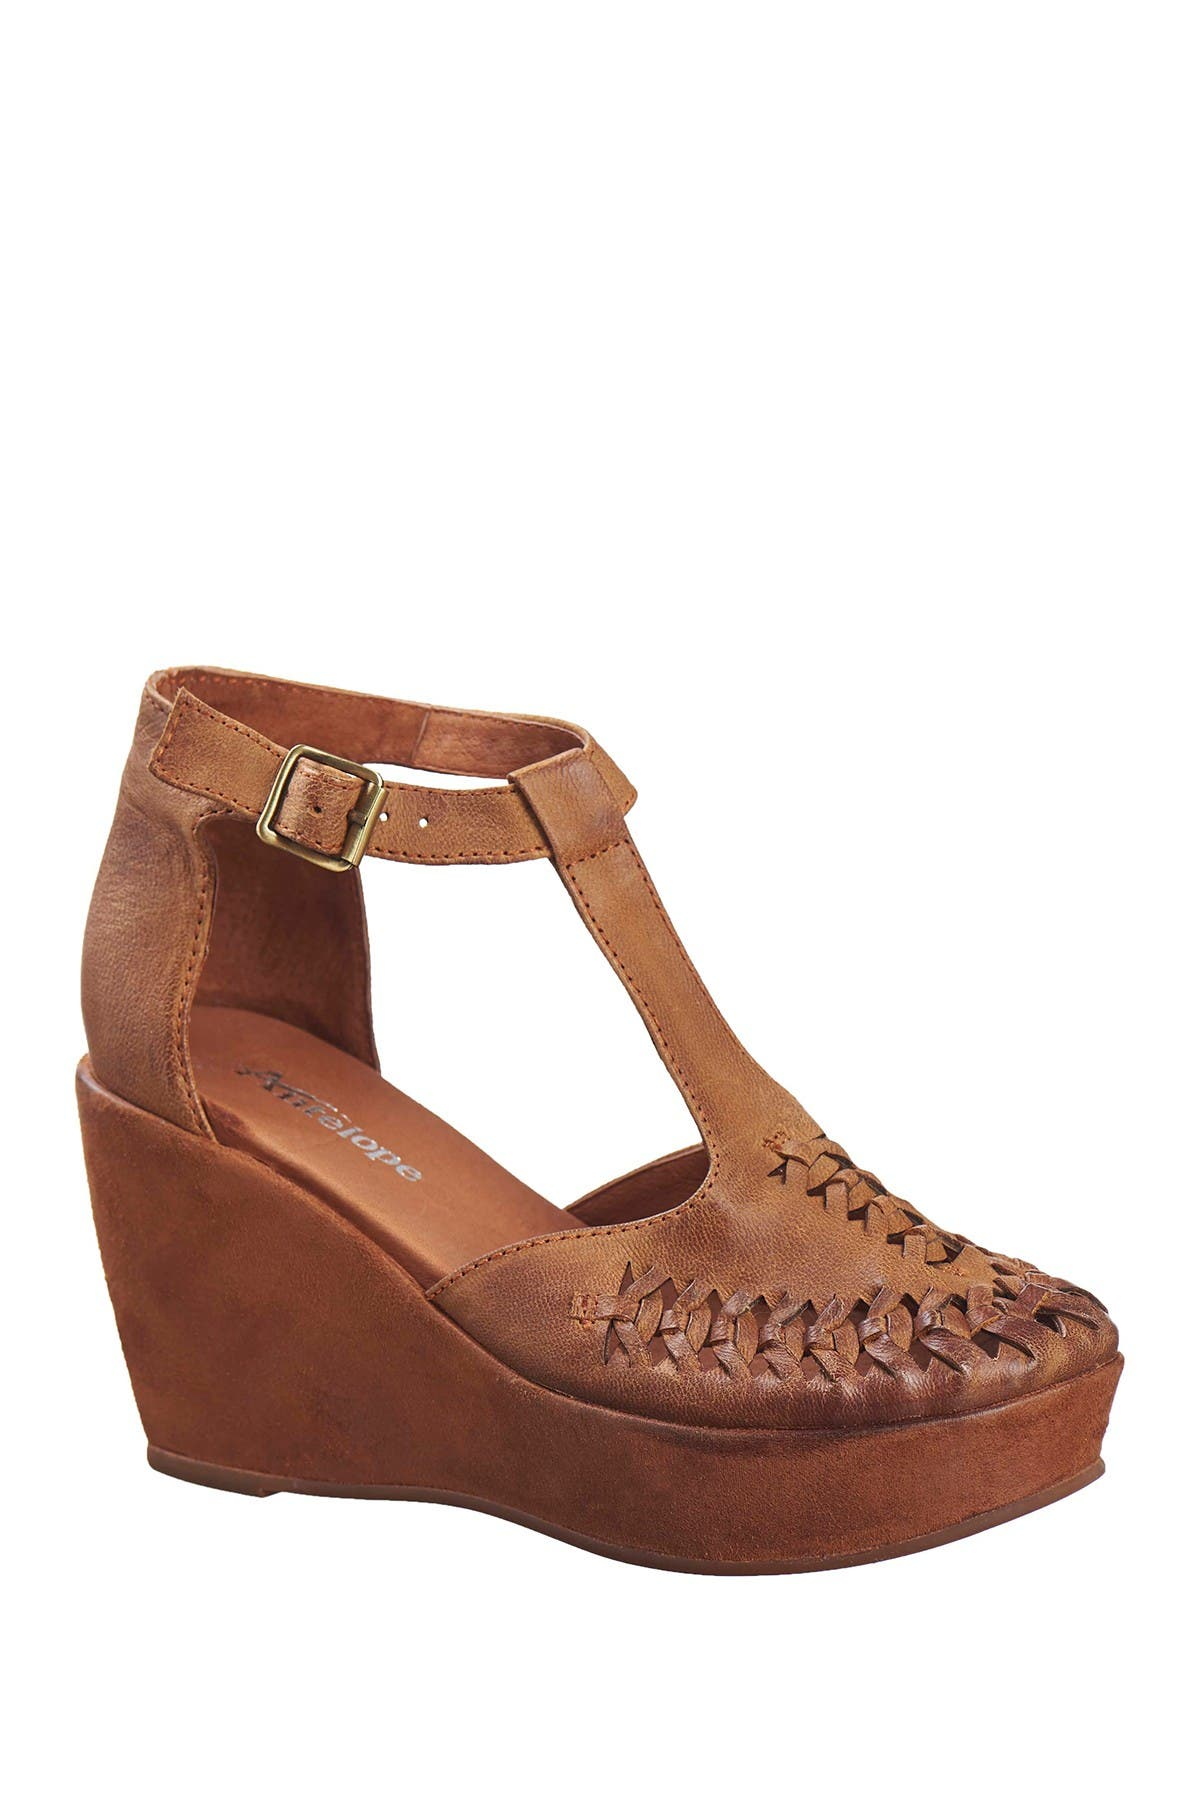 Image of Antelope Leather T-Strap Platform Wedge Pump